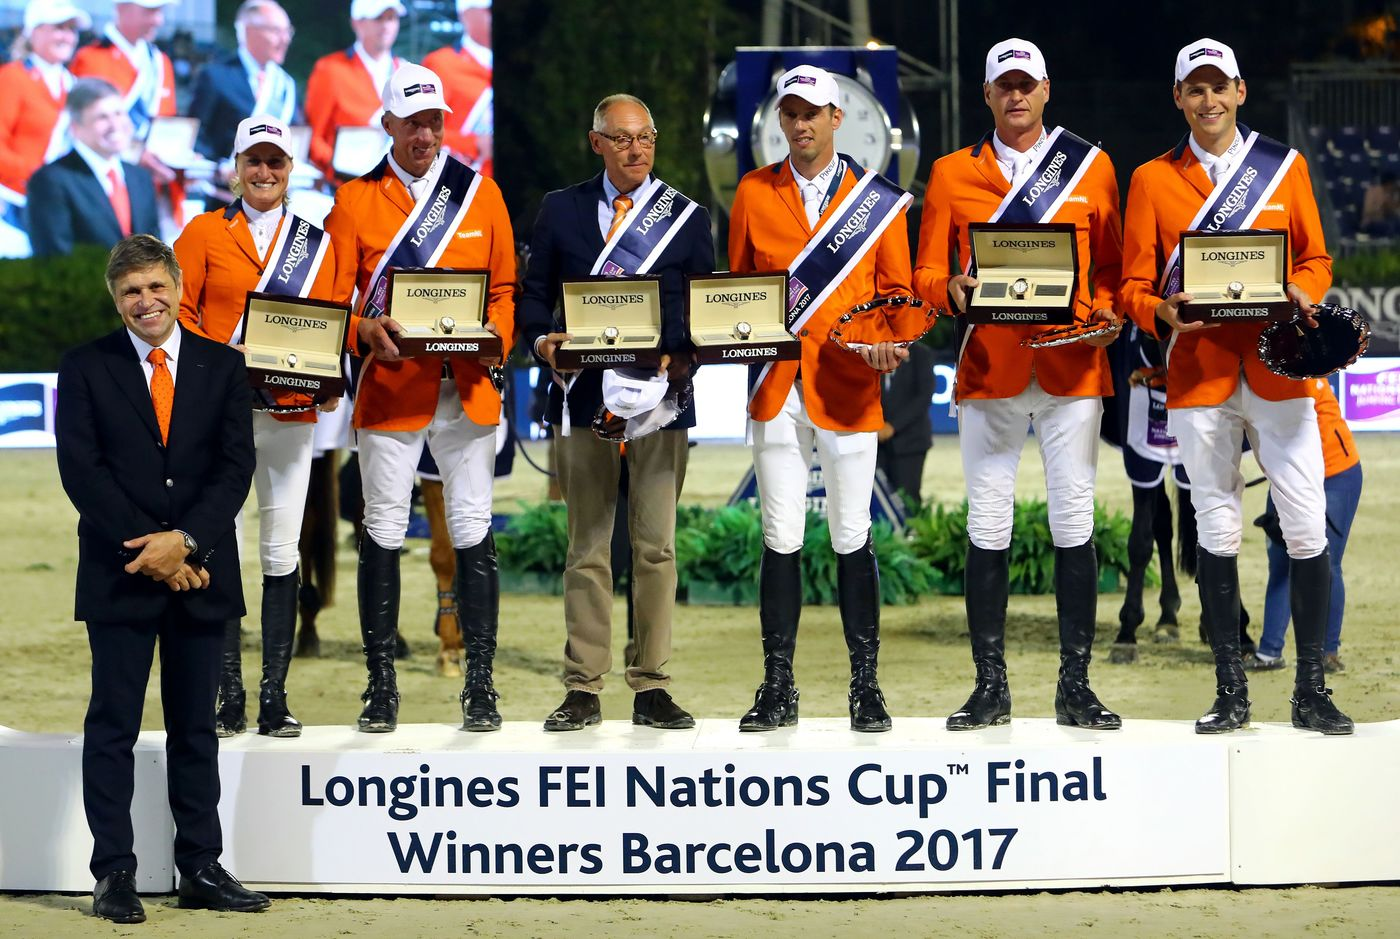 Longines Show Jumping Event: Team Netherlands claimed victory at the Longines FEI Nations Cup™ Jumping Final in Barcelona  2